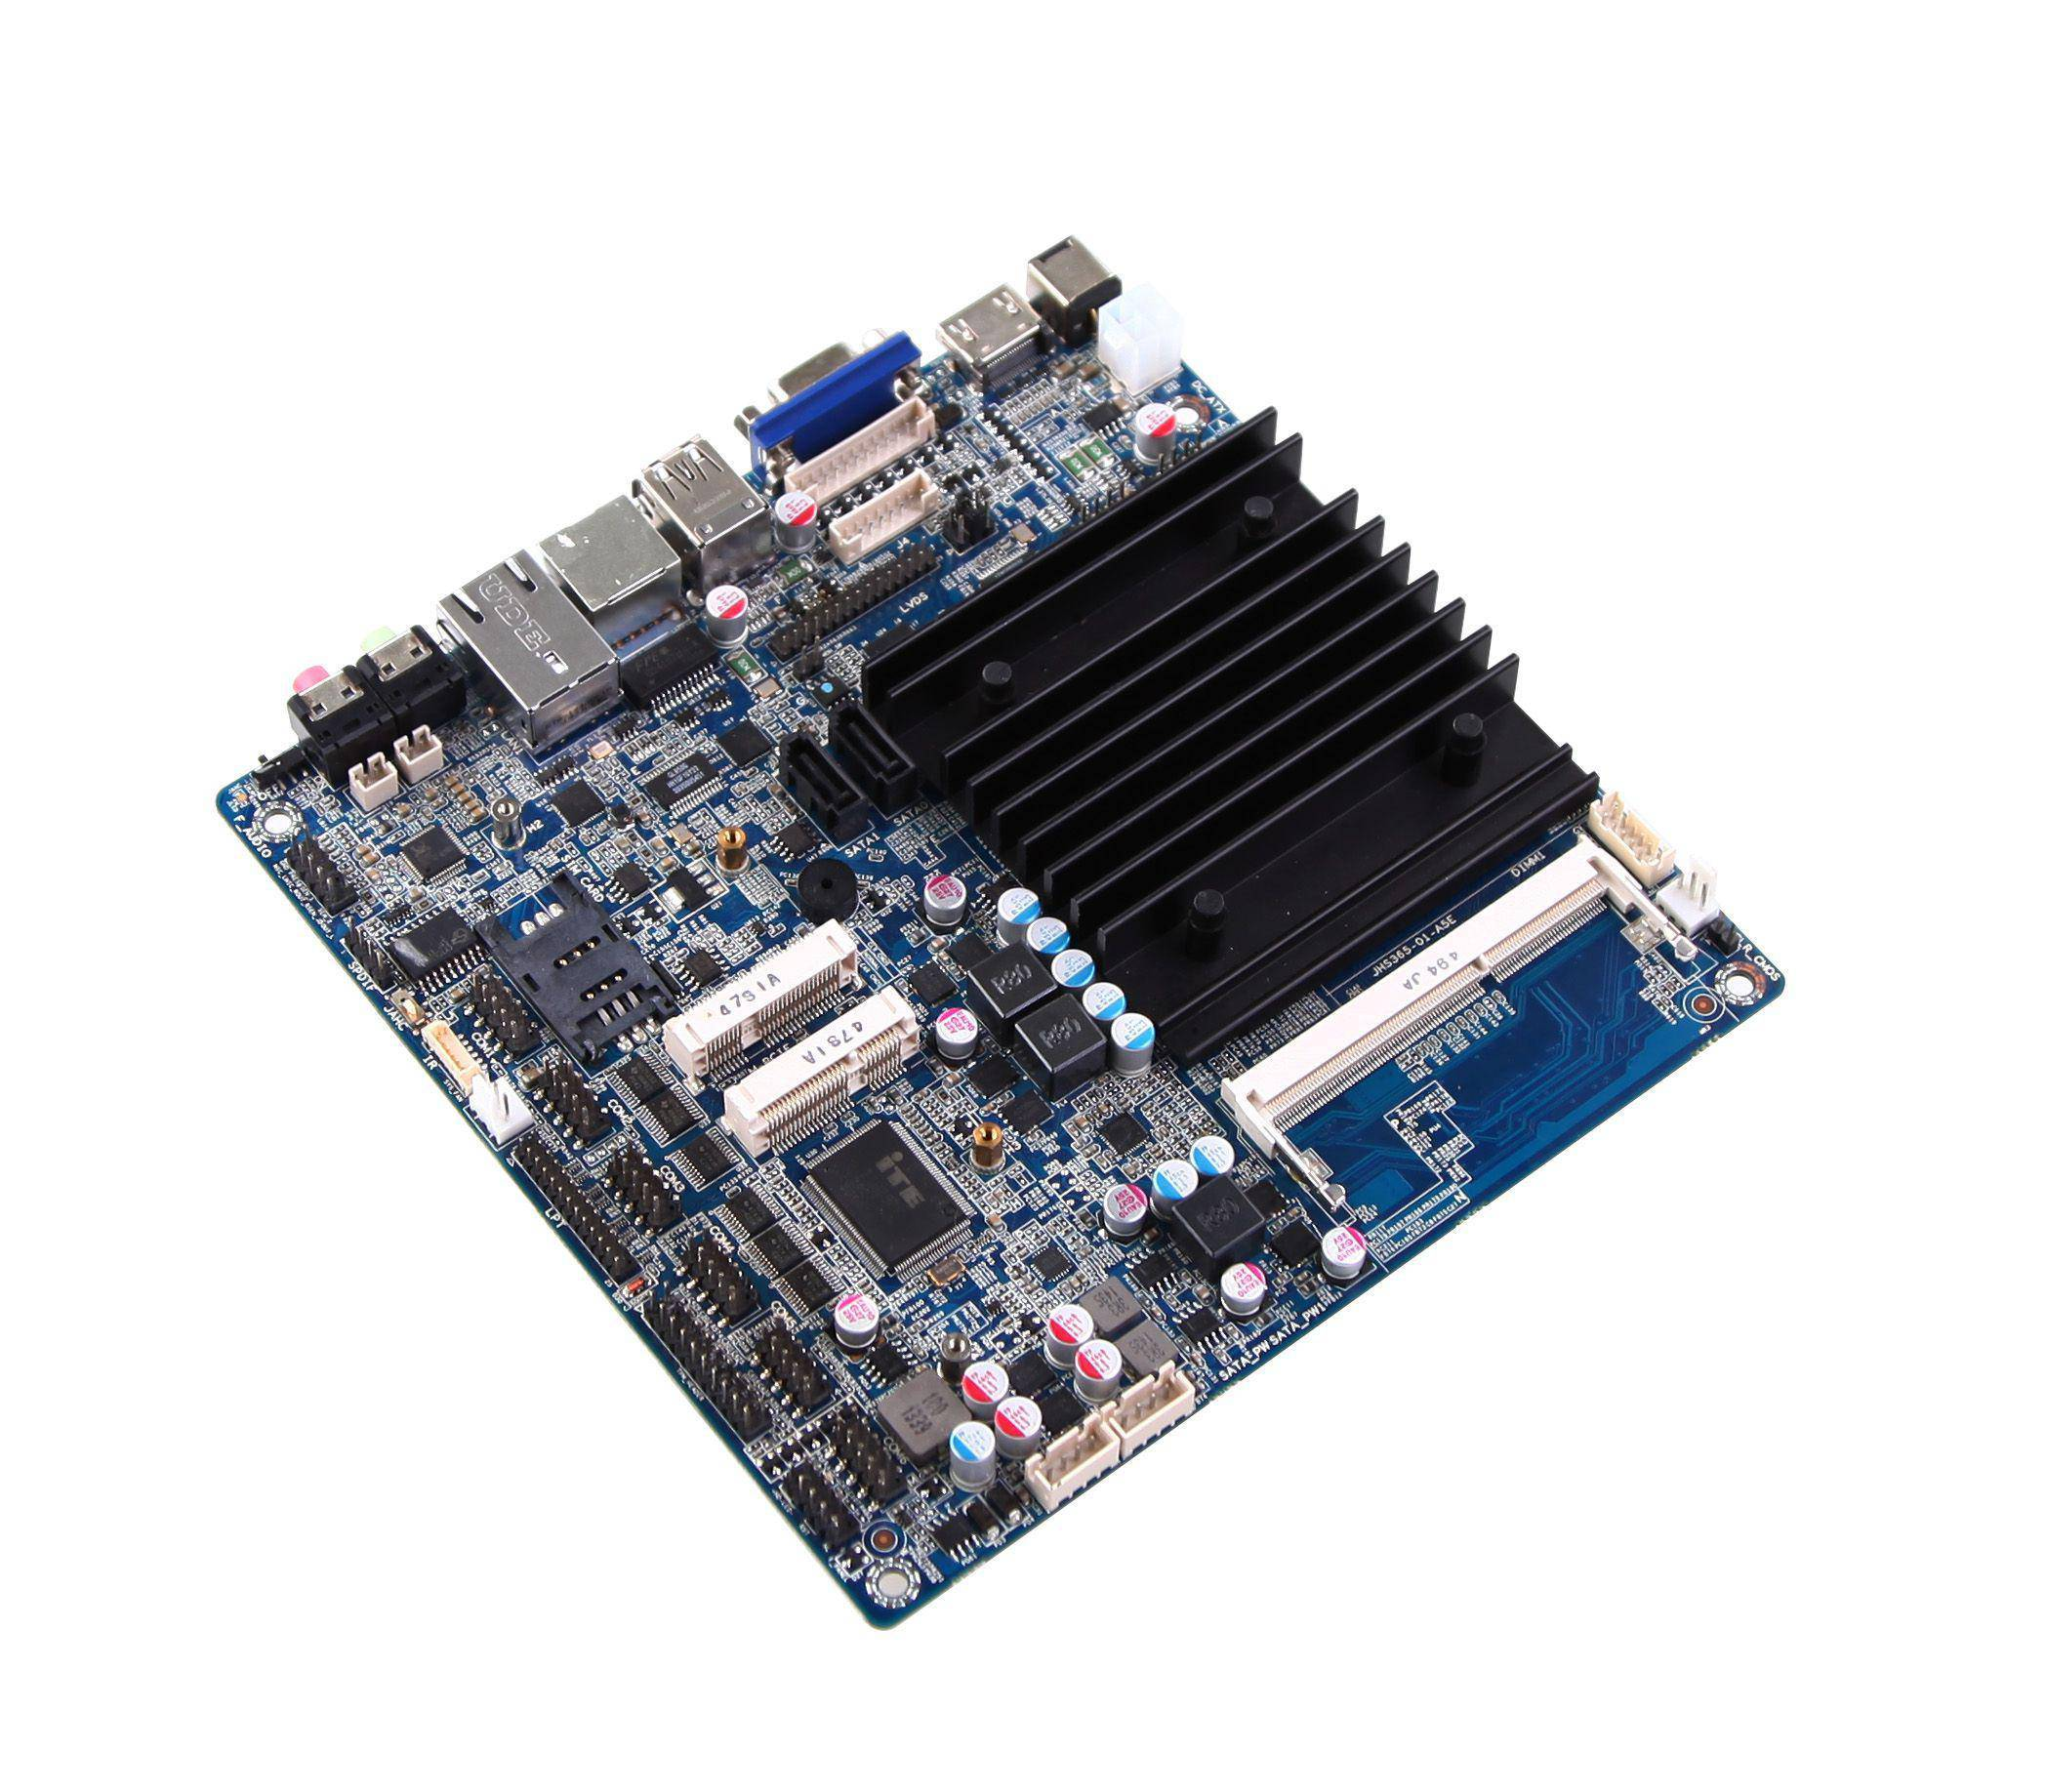 Onboard Intel® Celeron® J1900 Processor motherboards with providing technical support MBC007